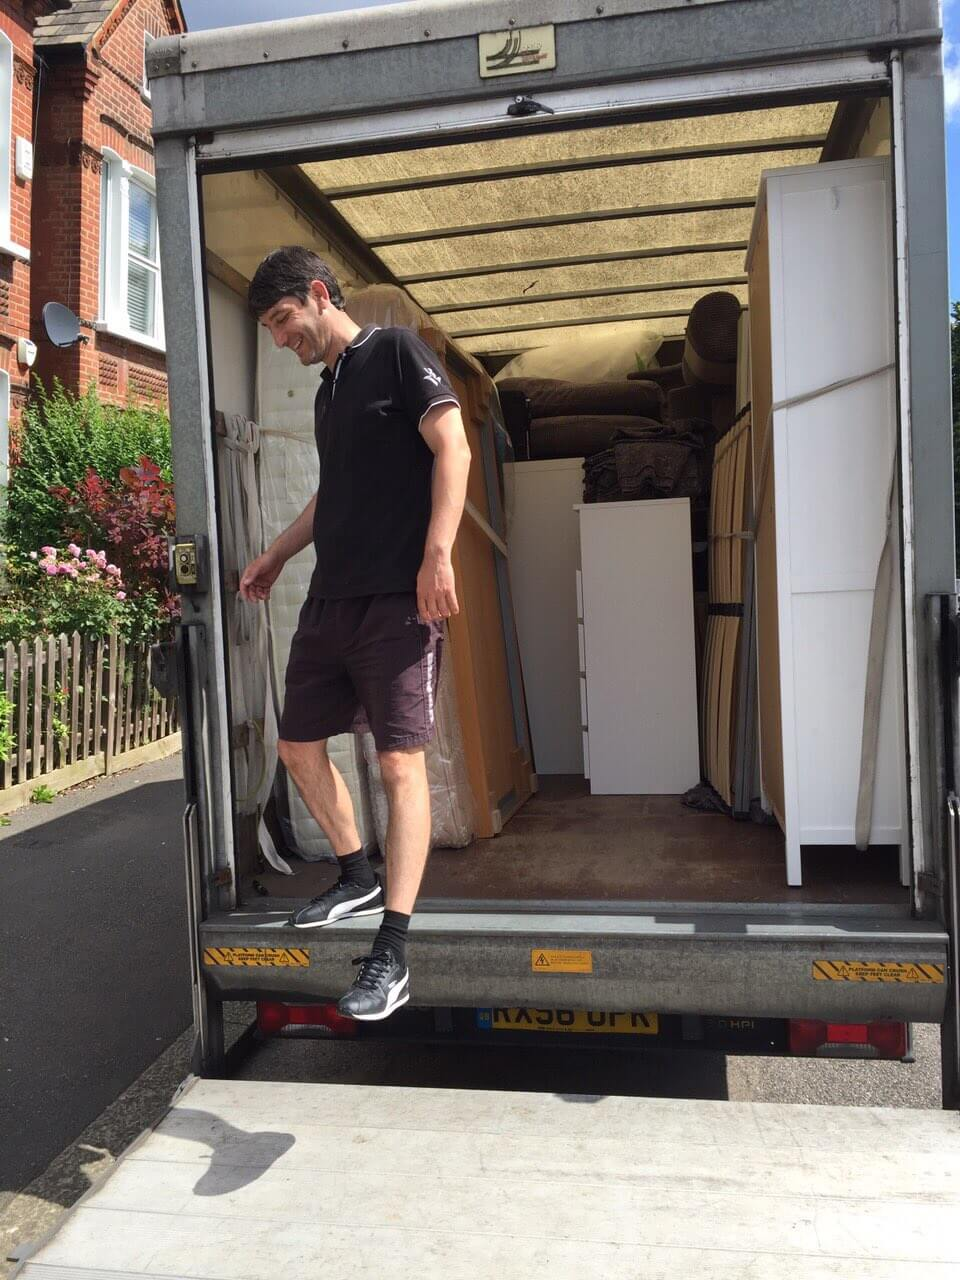 N12 van for hire in North Finchley